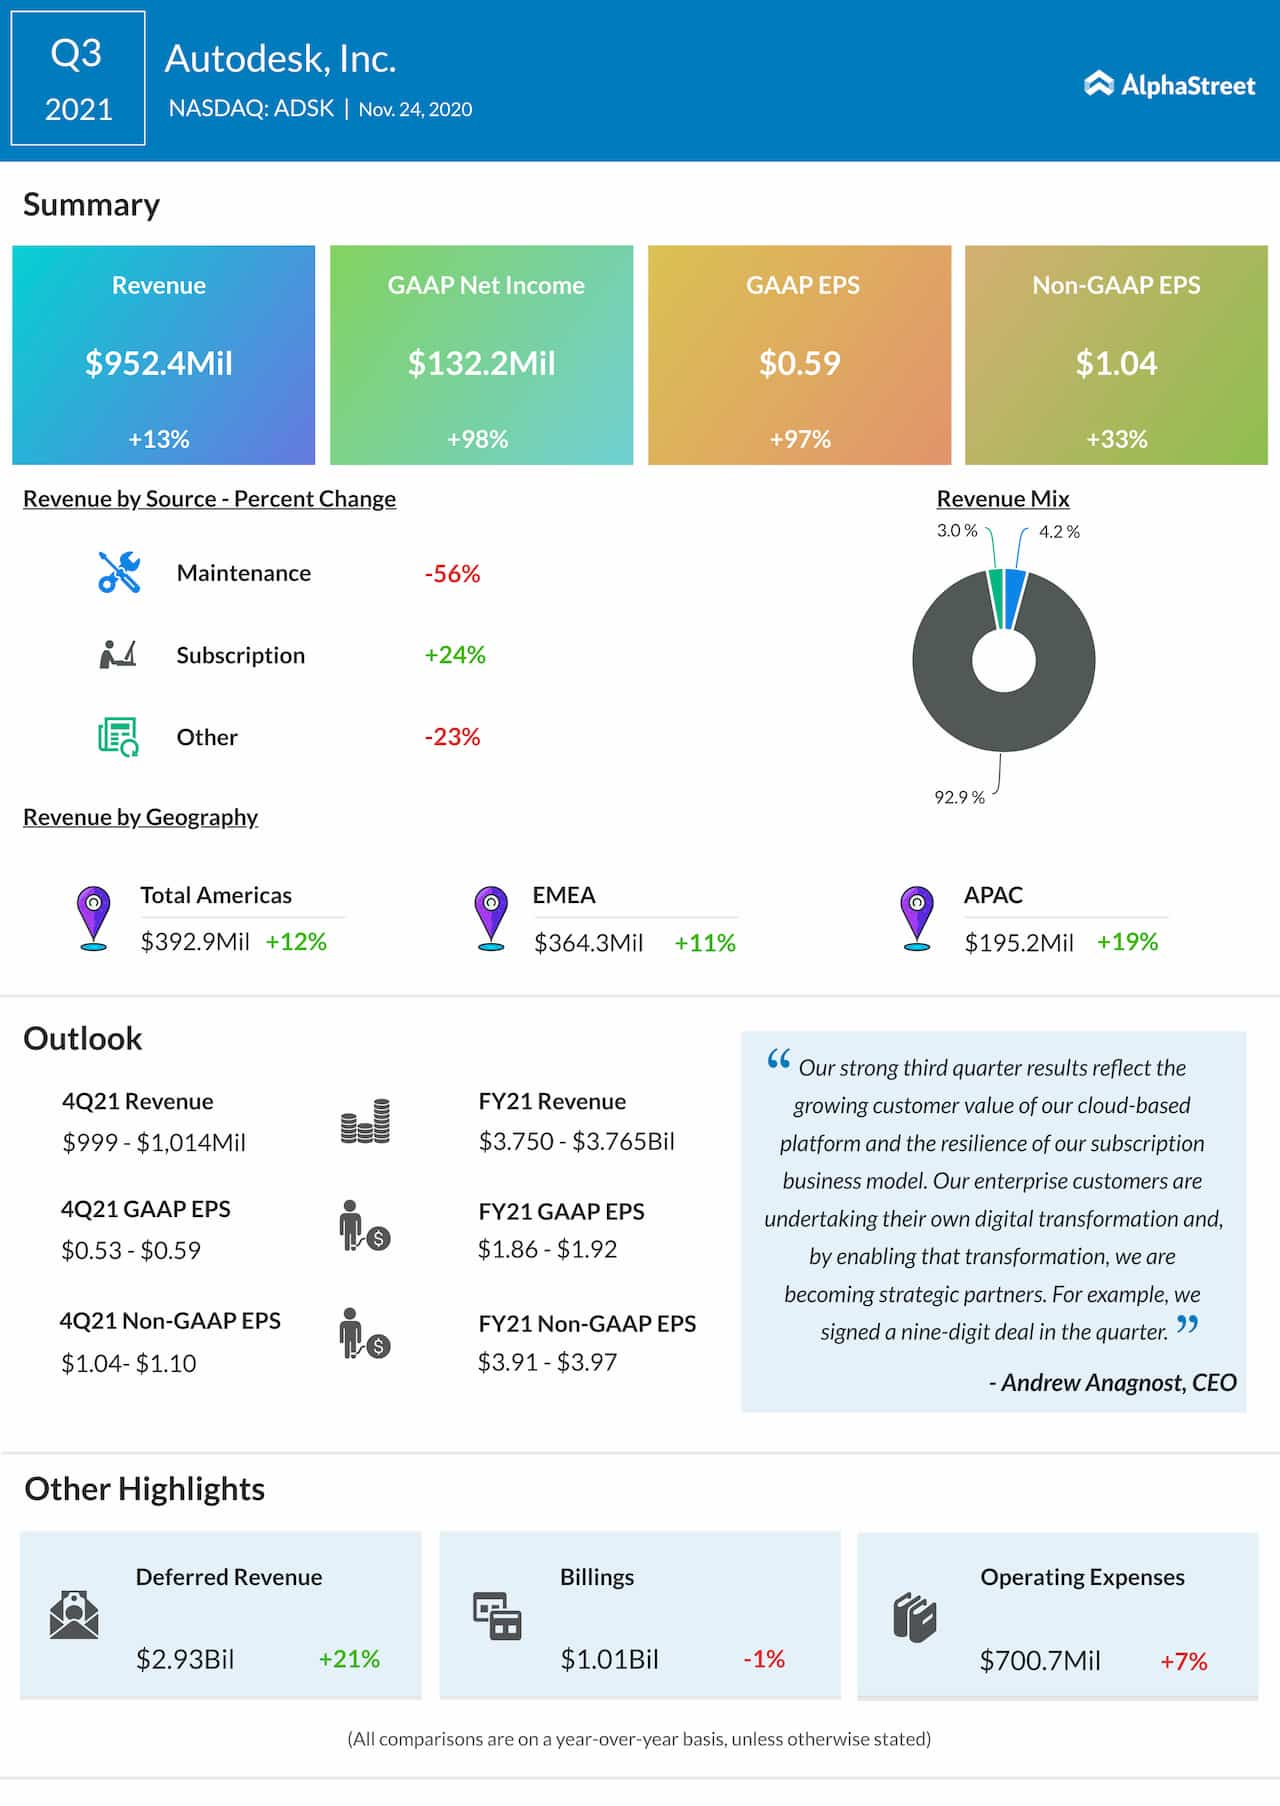 Autodesk Q3 2021 earnings infographic